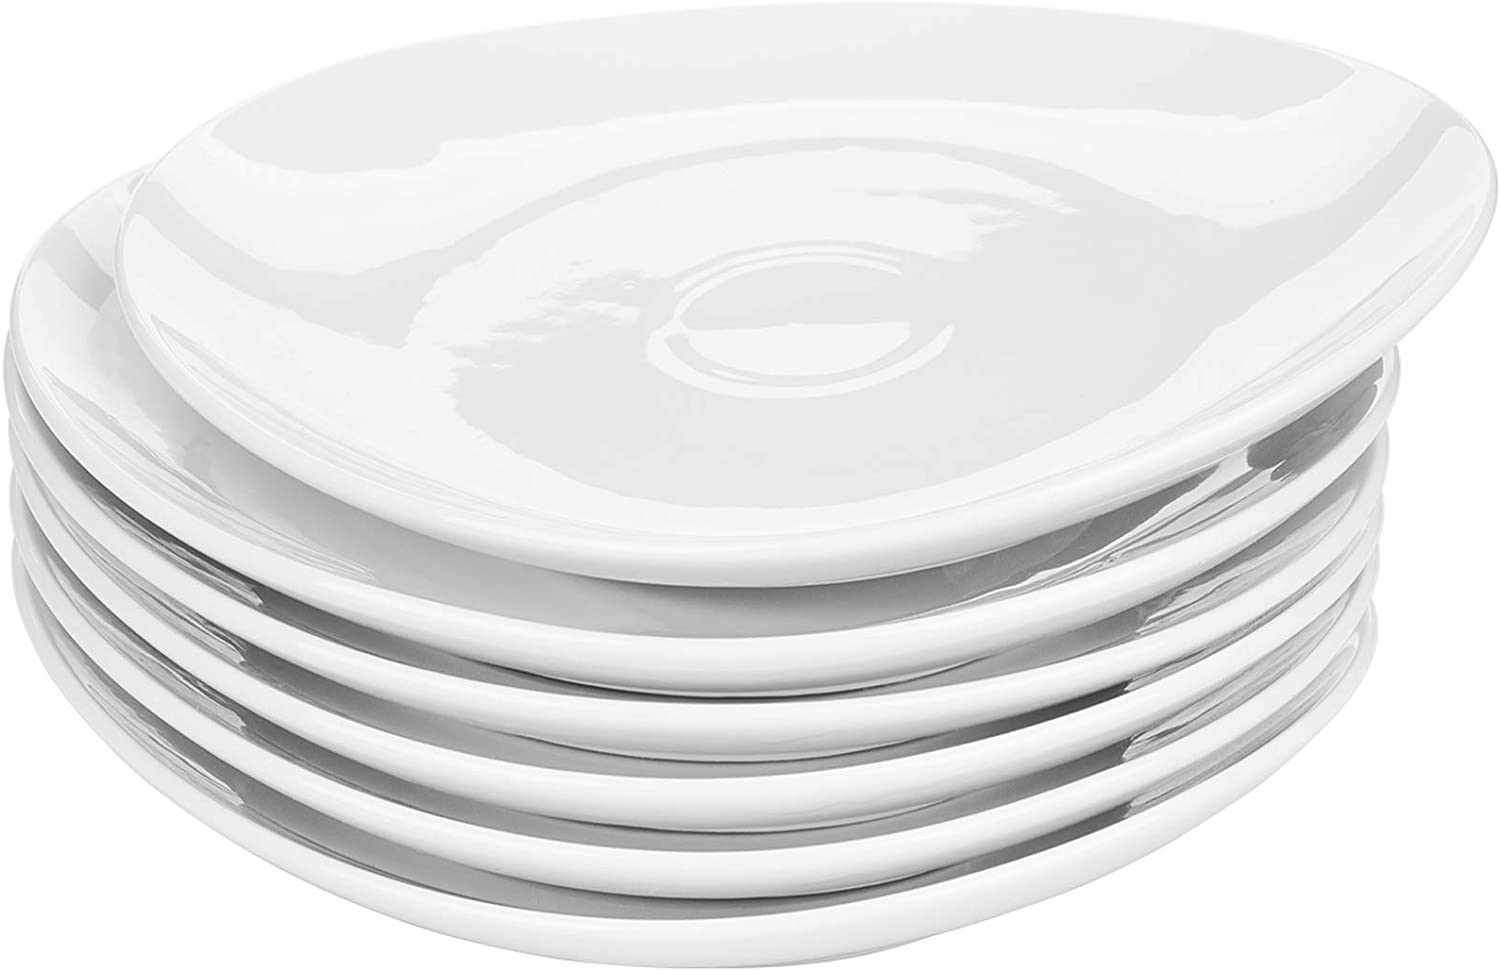 Yarlung 6 Pack 11 Inch Porcelain Dinner Plates, Oval White Salad Plate Kitchen Dinnerware Serving Dishes Set for Home, Restaurant, Party Use, Microwave and Dishwasher Safe